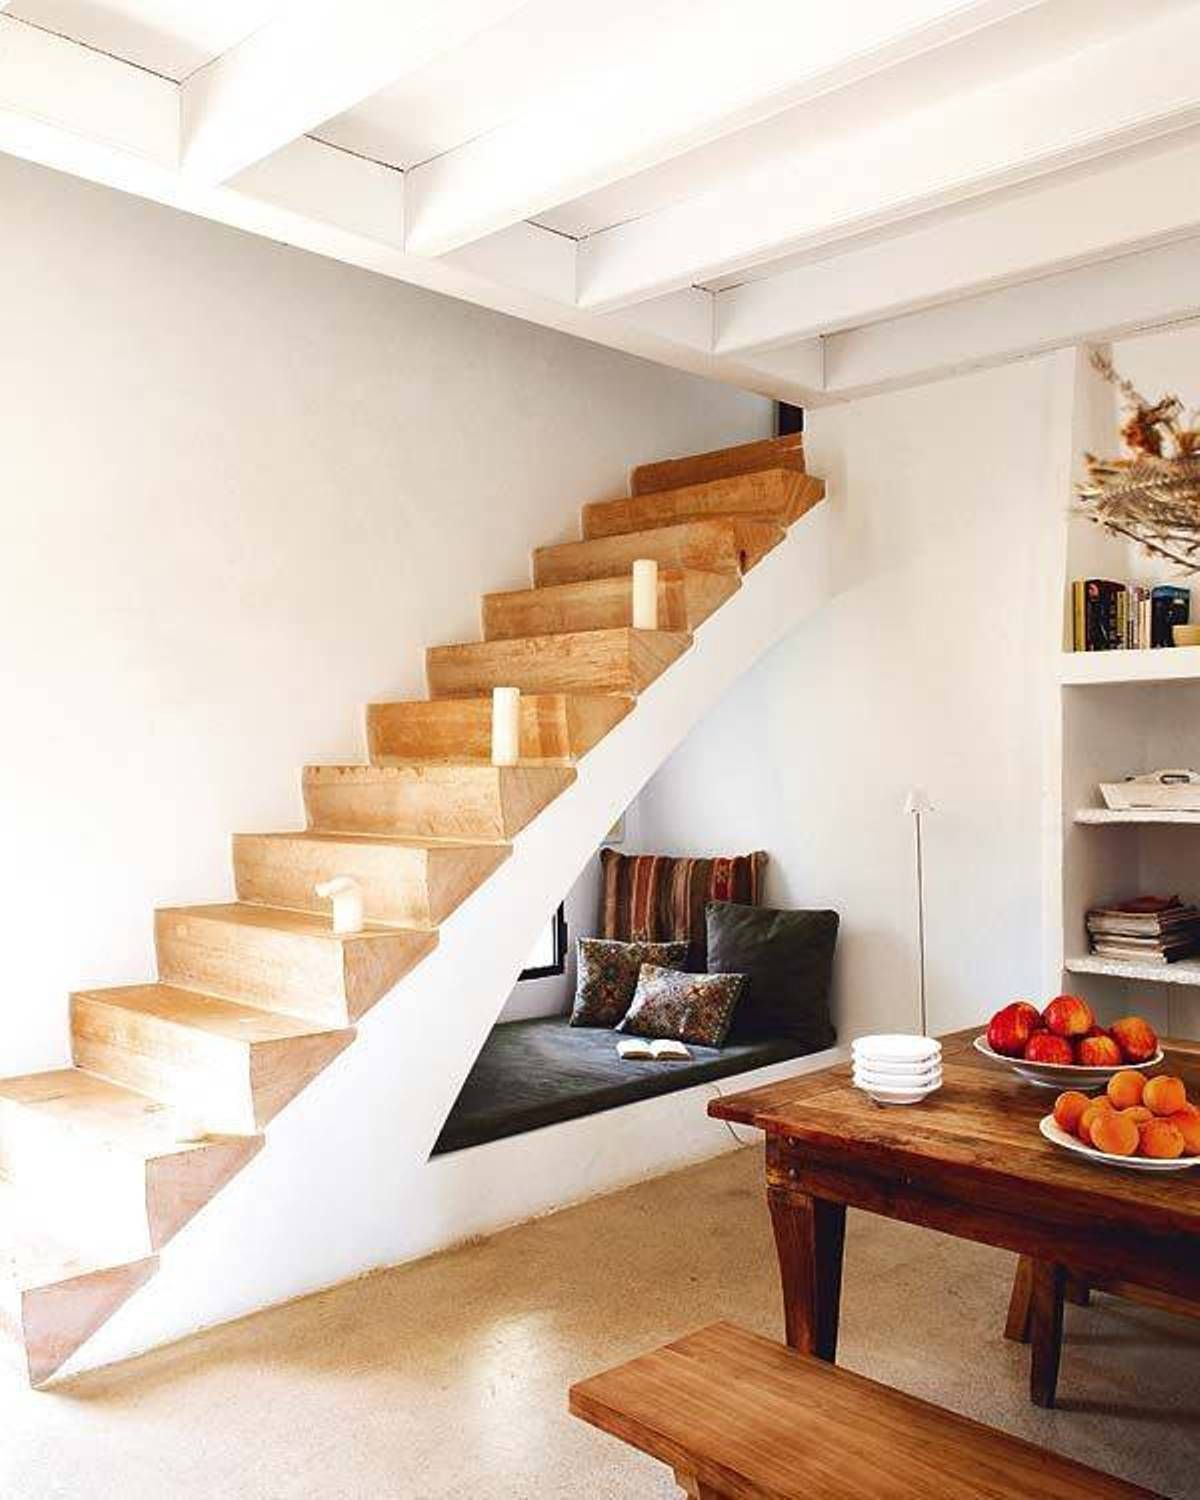 Space Under Stairs reading nook space under stairs. want it! | bedroom ideas